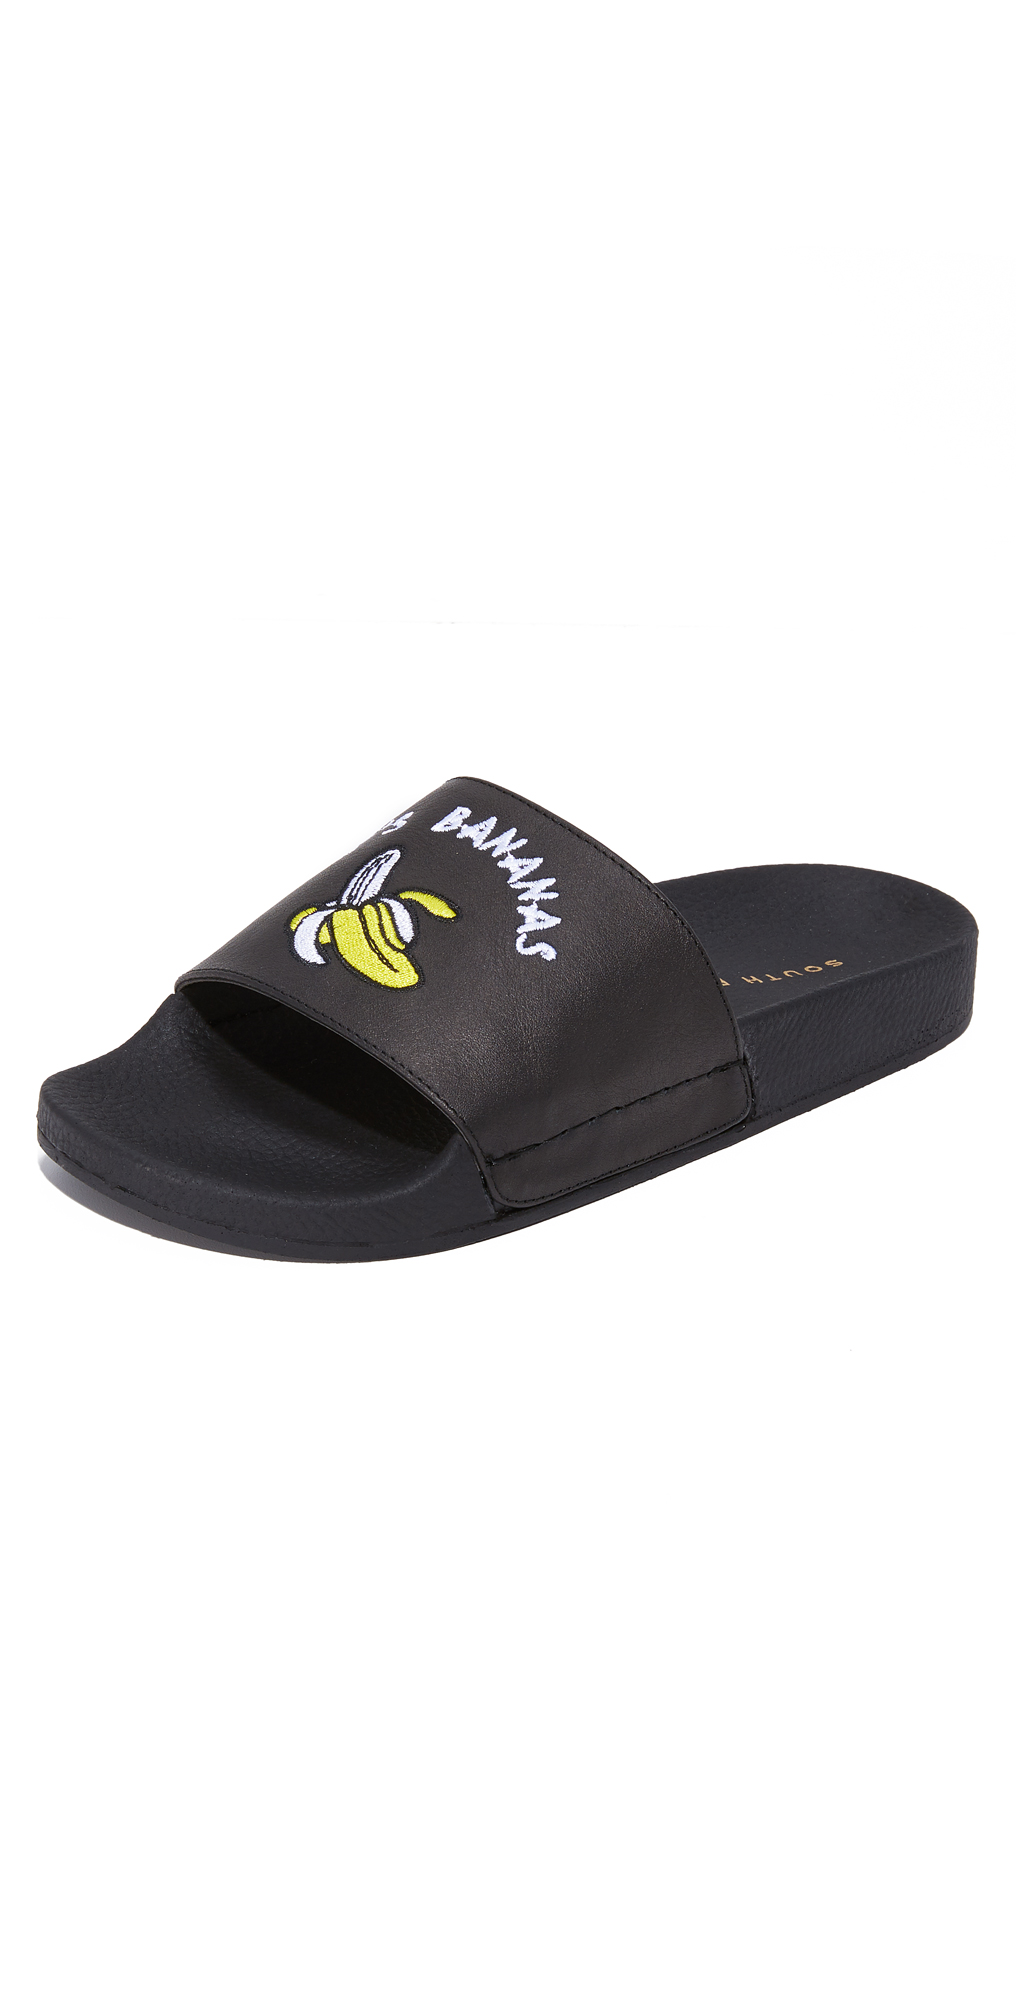 It's Bananas Pool Slides ONE by South Parade Footwear